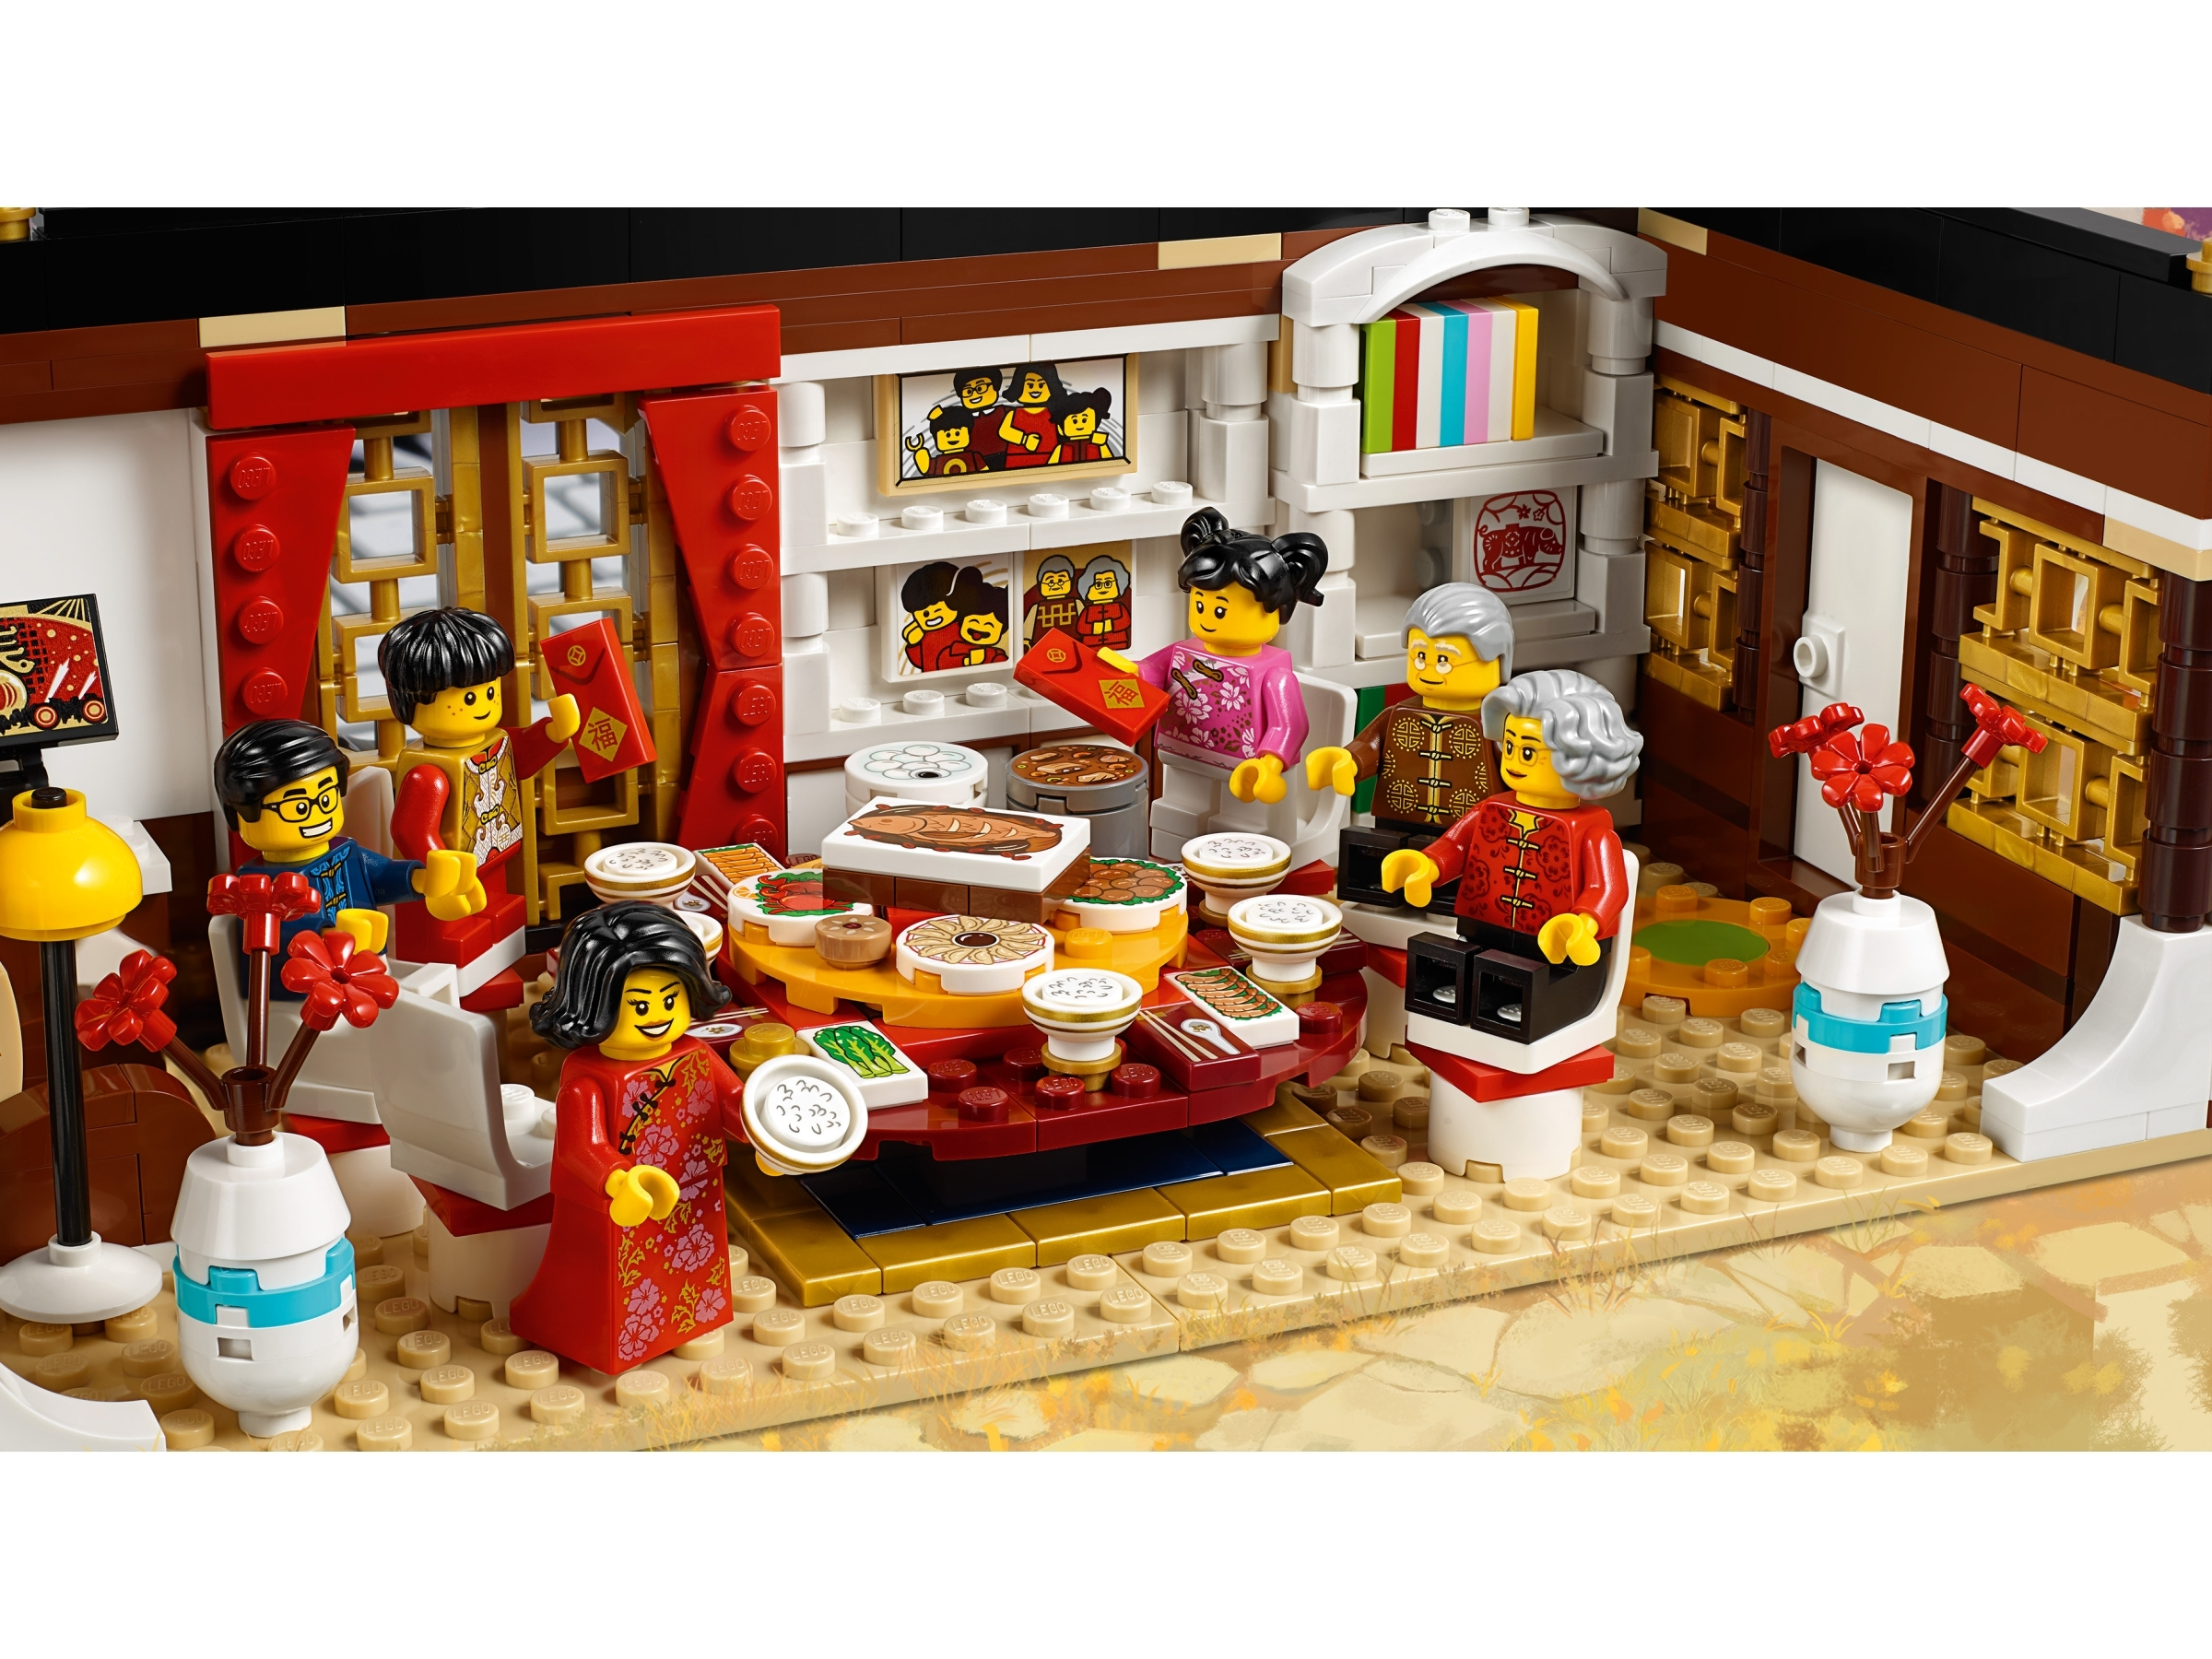 BRAND NEW RETIRED Lego 80101 Chinese New Year Eve/'s Dinner